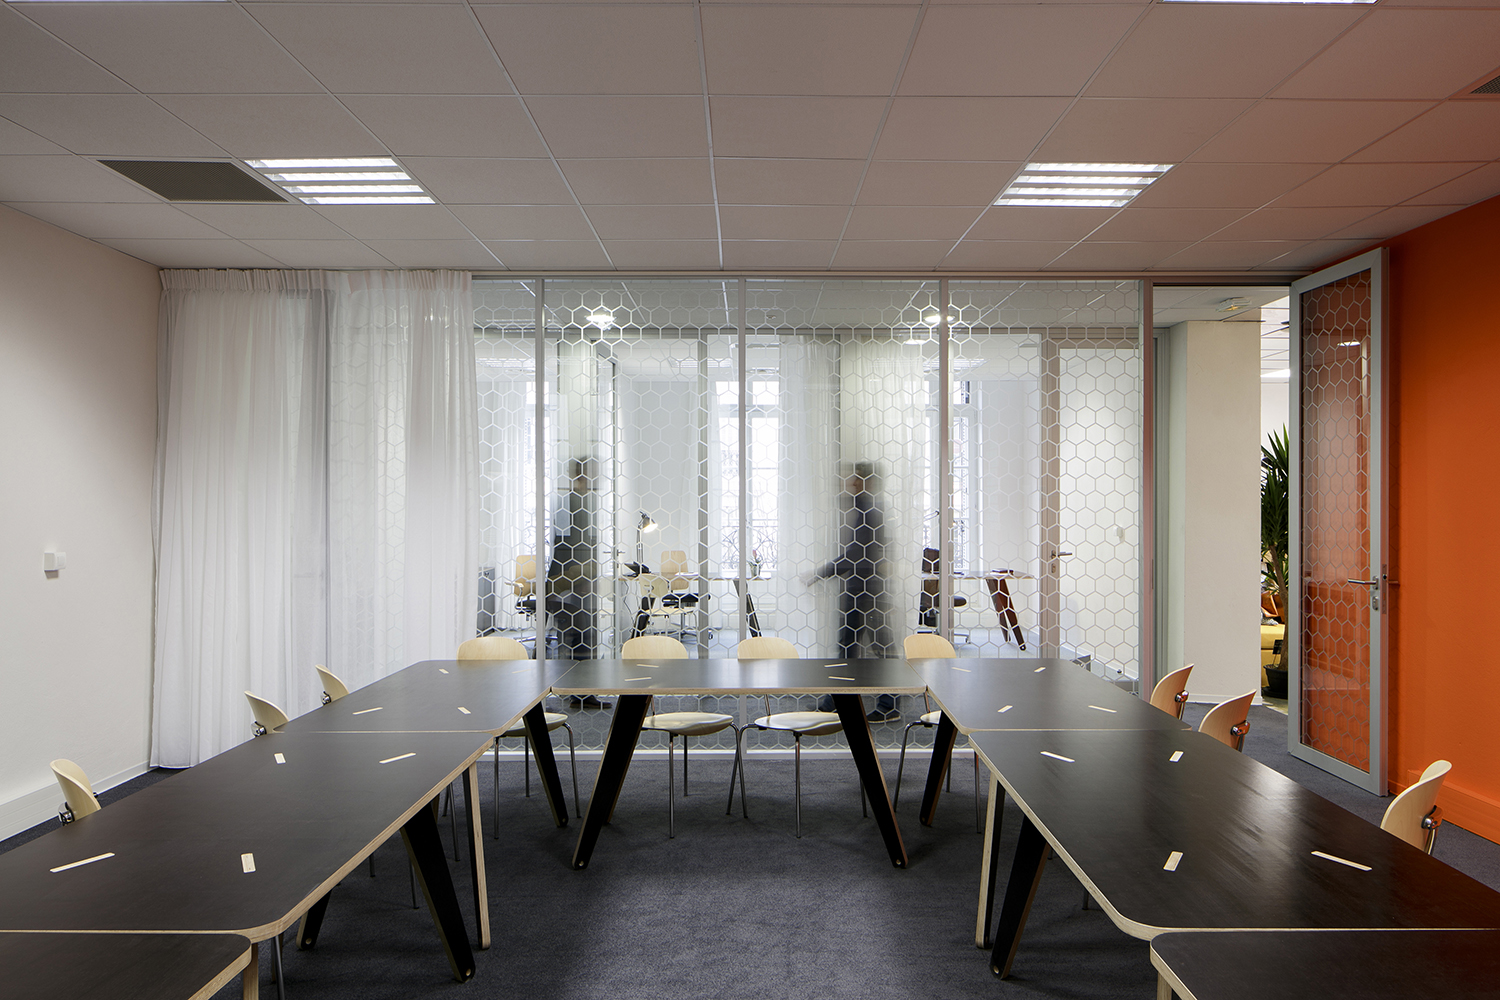 Grande salle de réunion - Orange meeting room